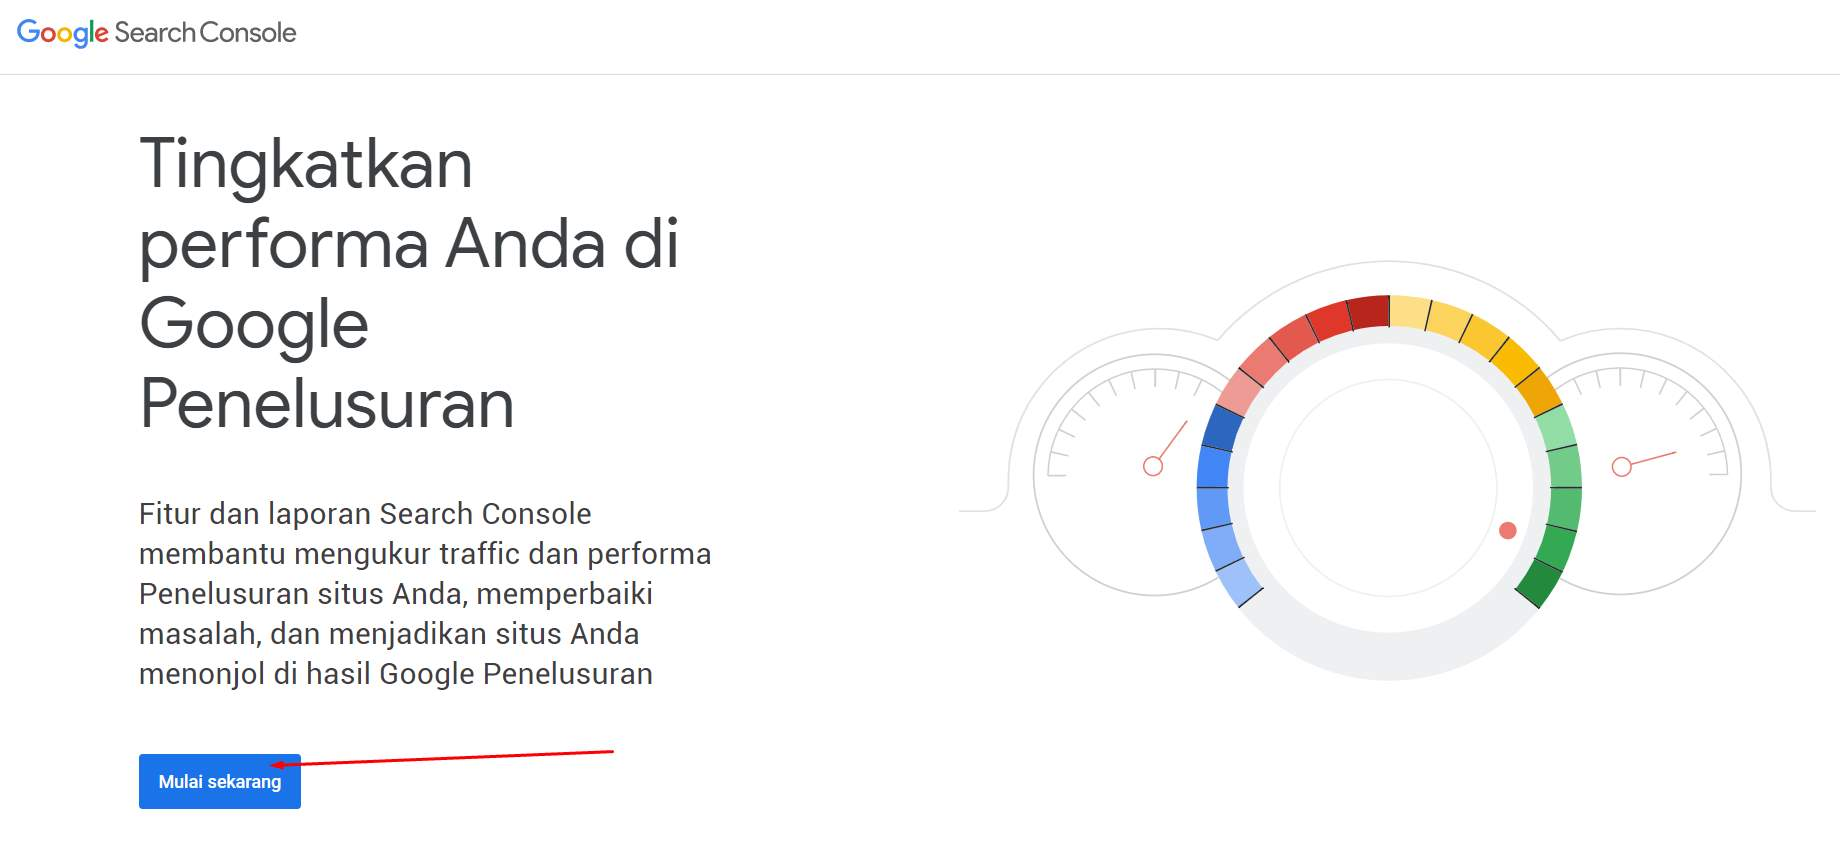 Tampilan Google Search Console